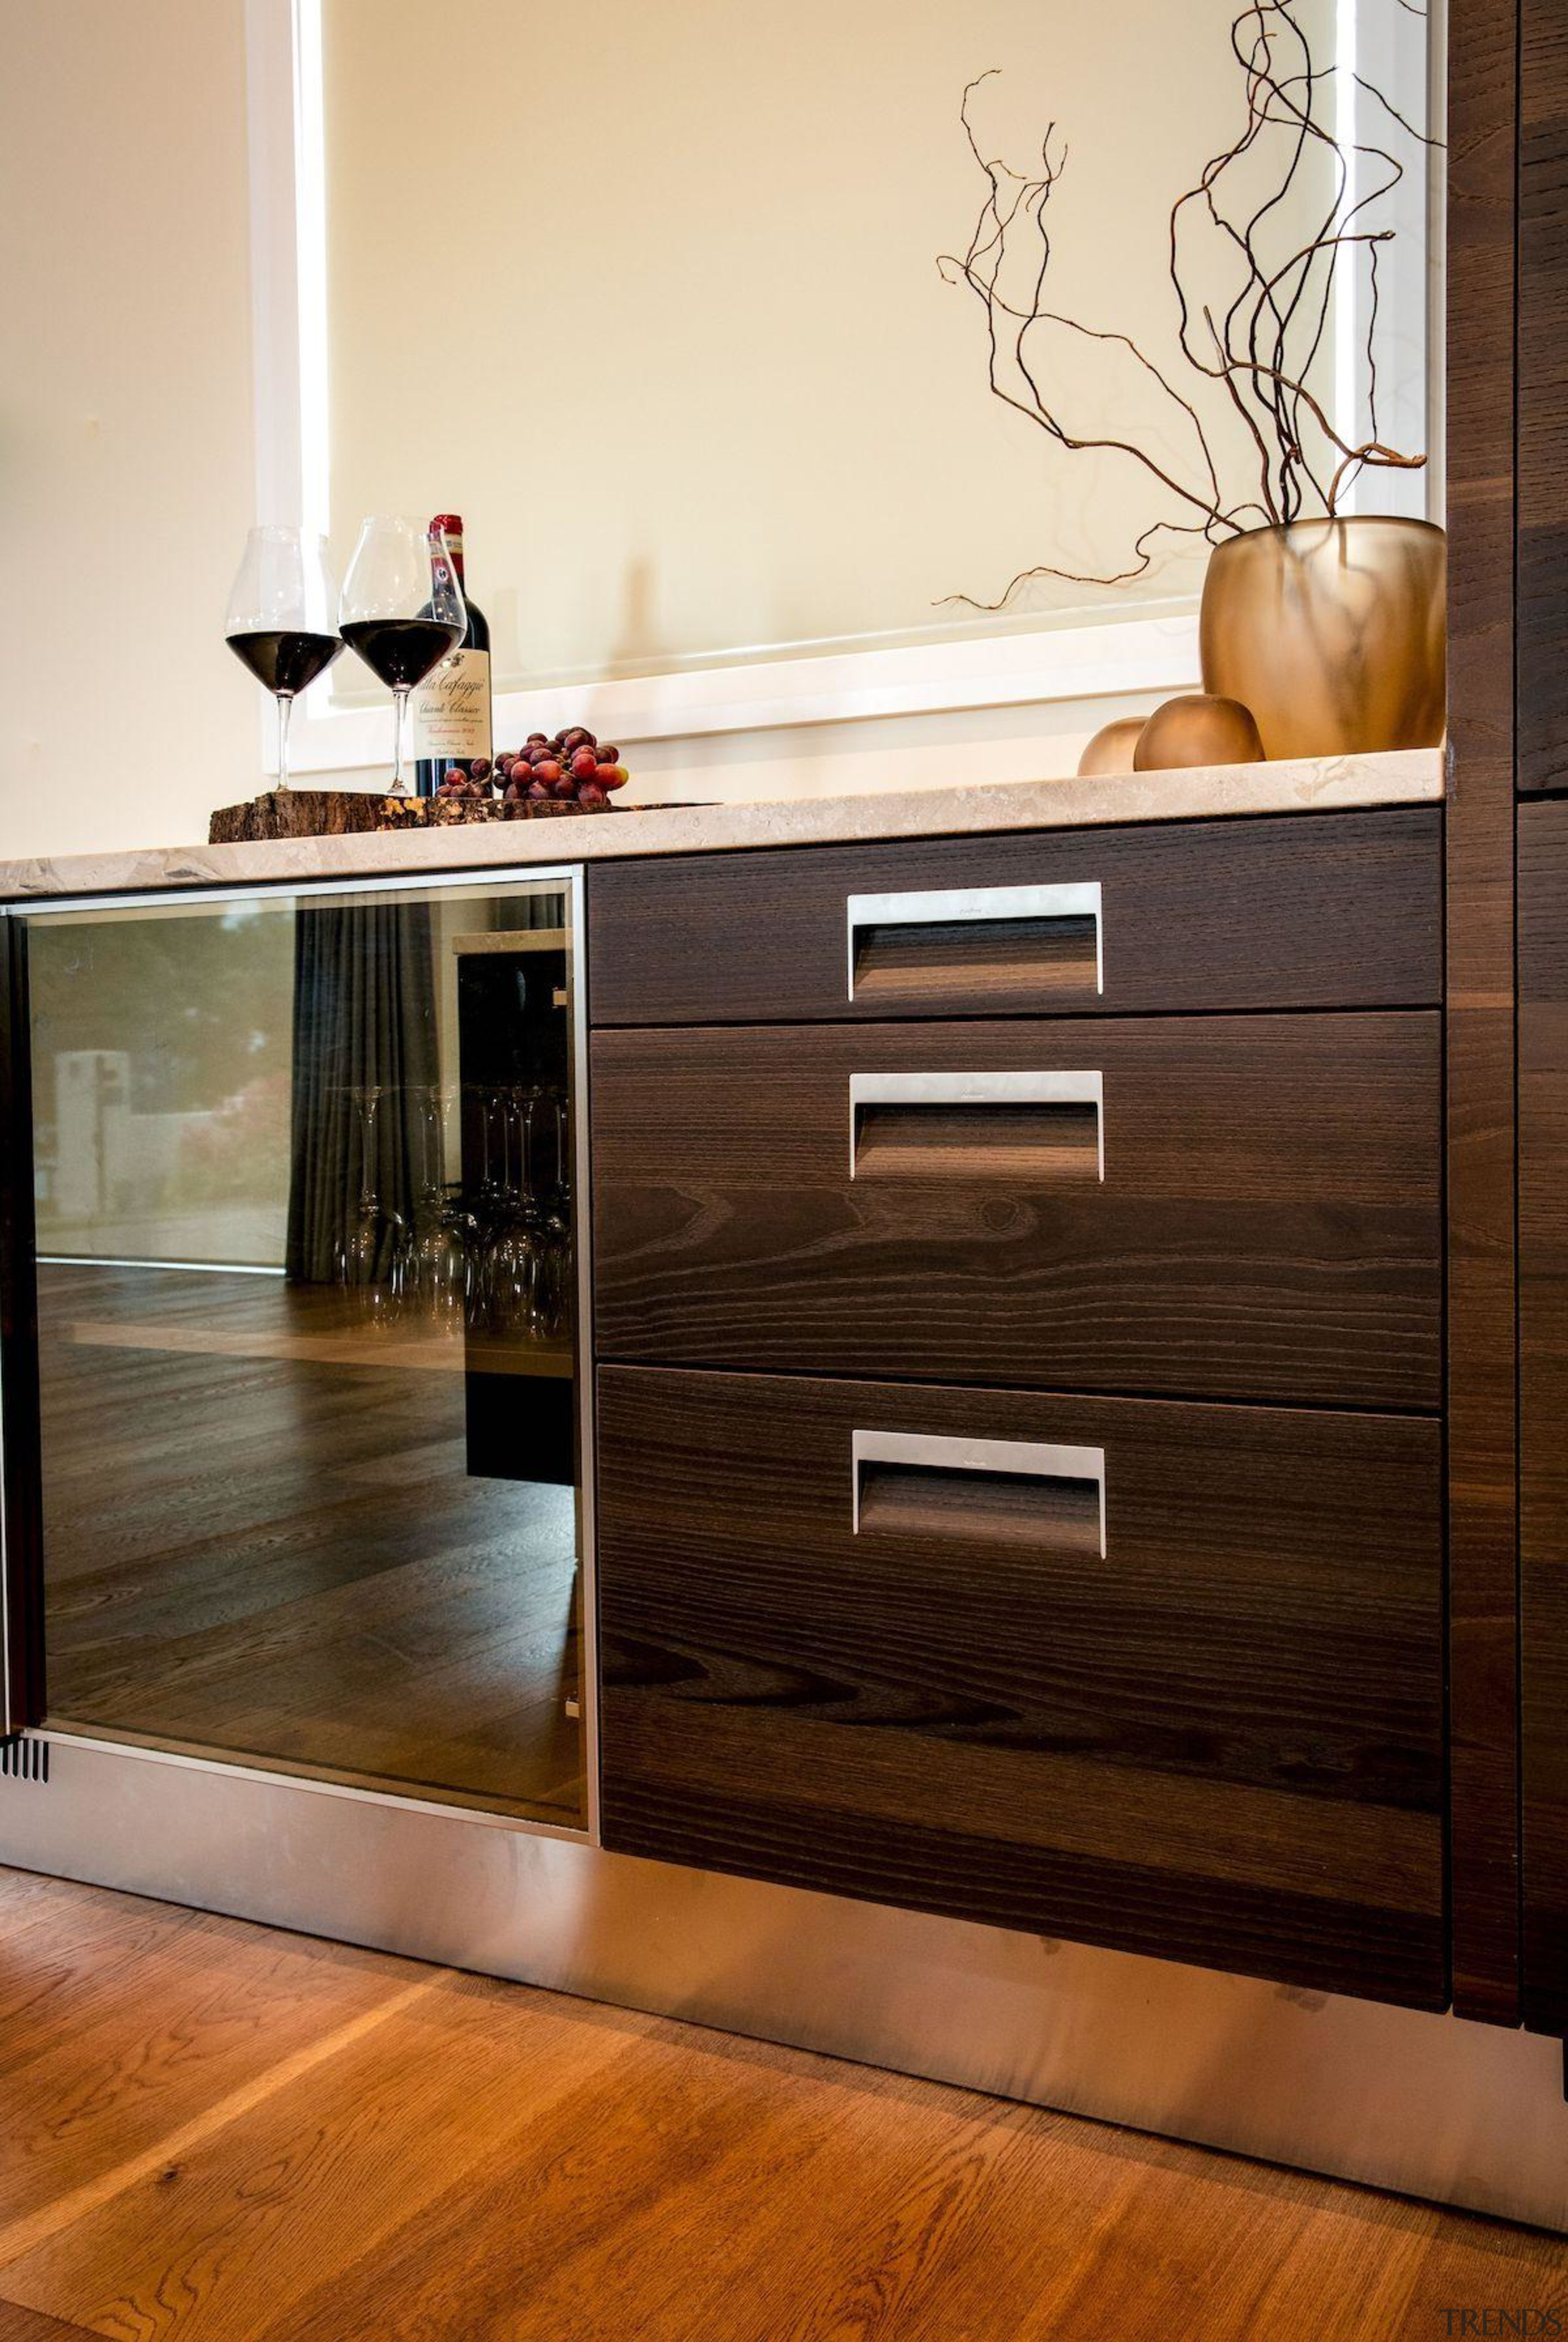 Arclinea kitchen design by Laura Ellis, Matisse - cabinetry, chest of drawers, drawer, floor, flooring, furniture, hardwood, interior design, laminate flooring, shelf, sideboard, table, wood, wood flooring, wood stain, brown, orange